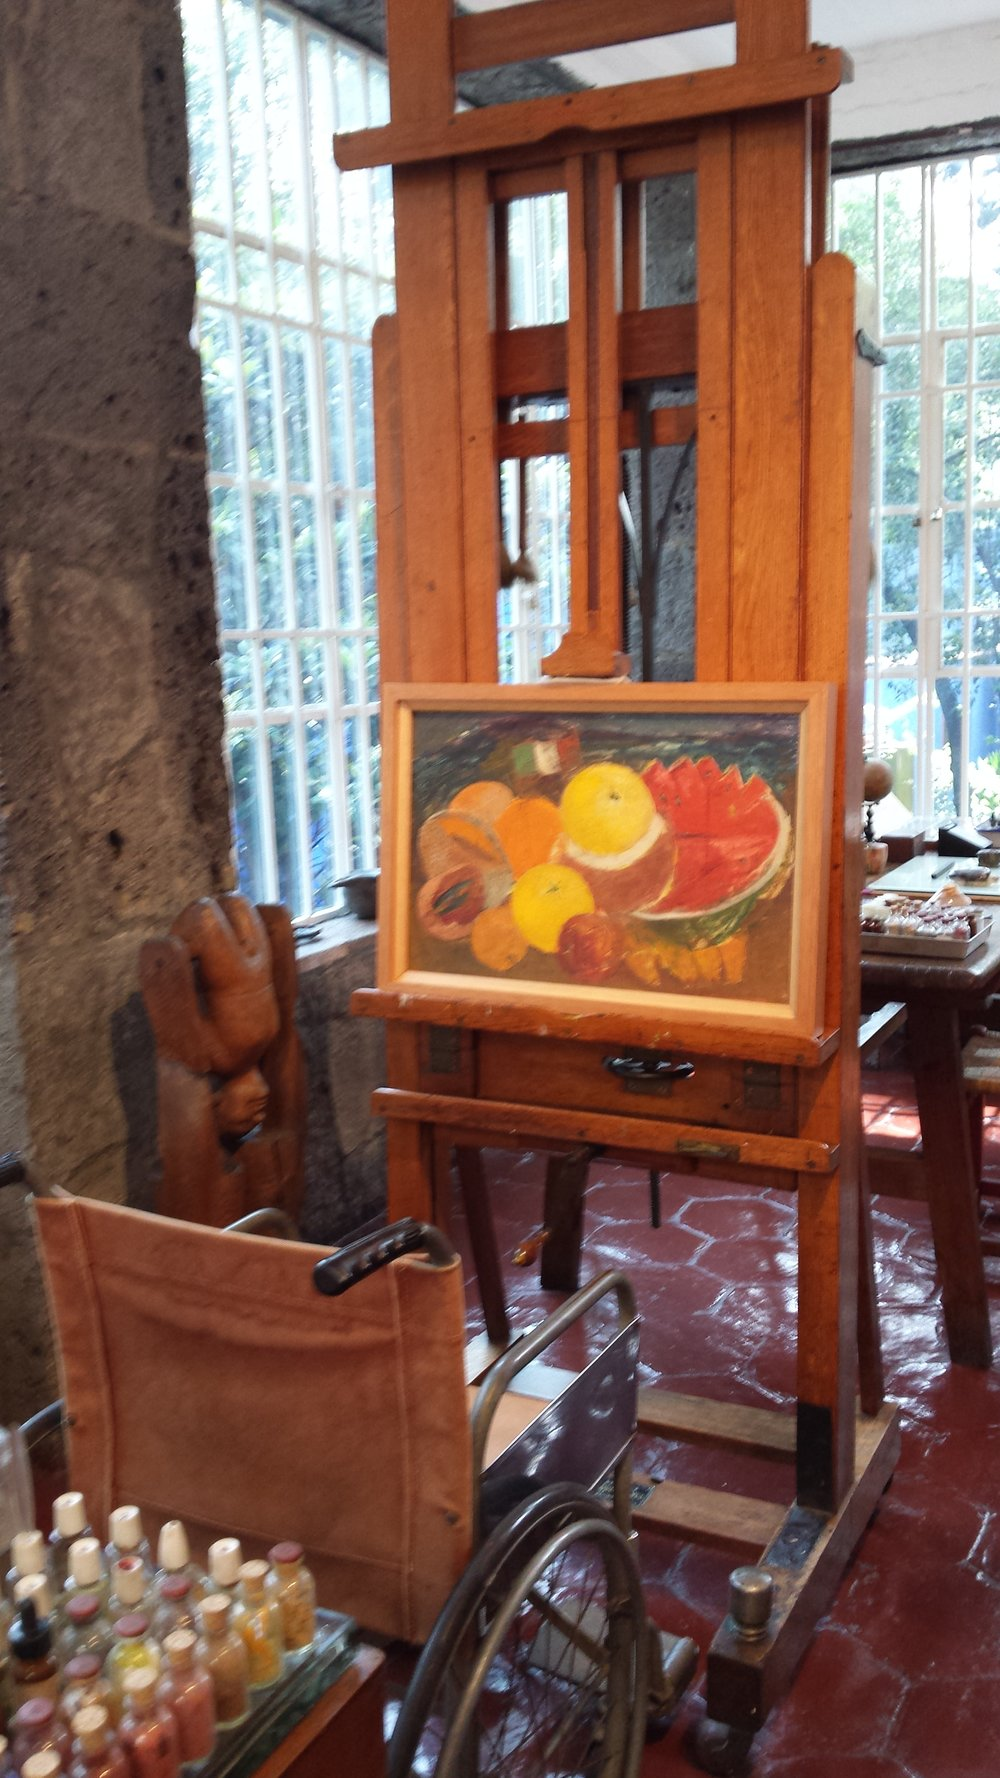 Frida's studio with her wheelchair and adjustable easel, on display at La Casa Azul museum in Mexico.